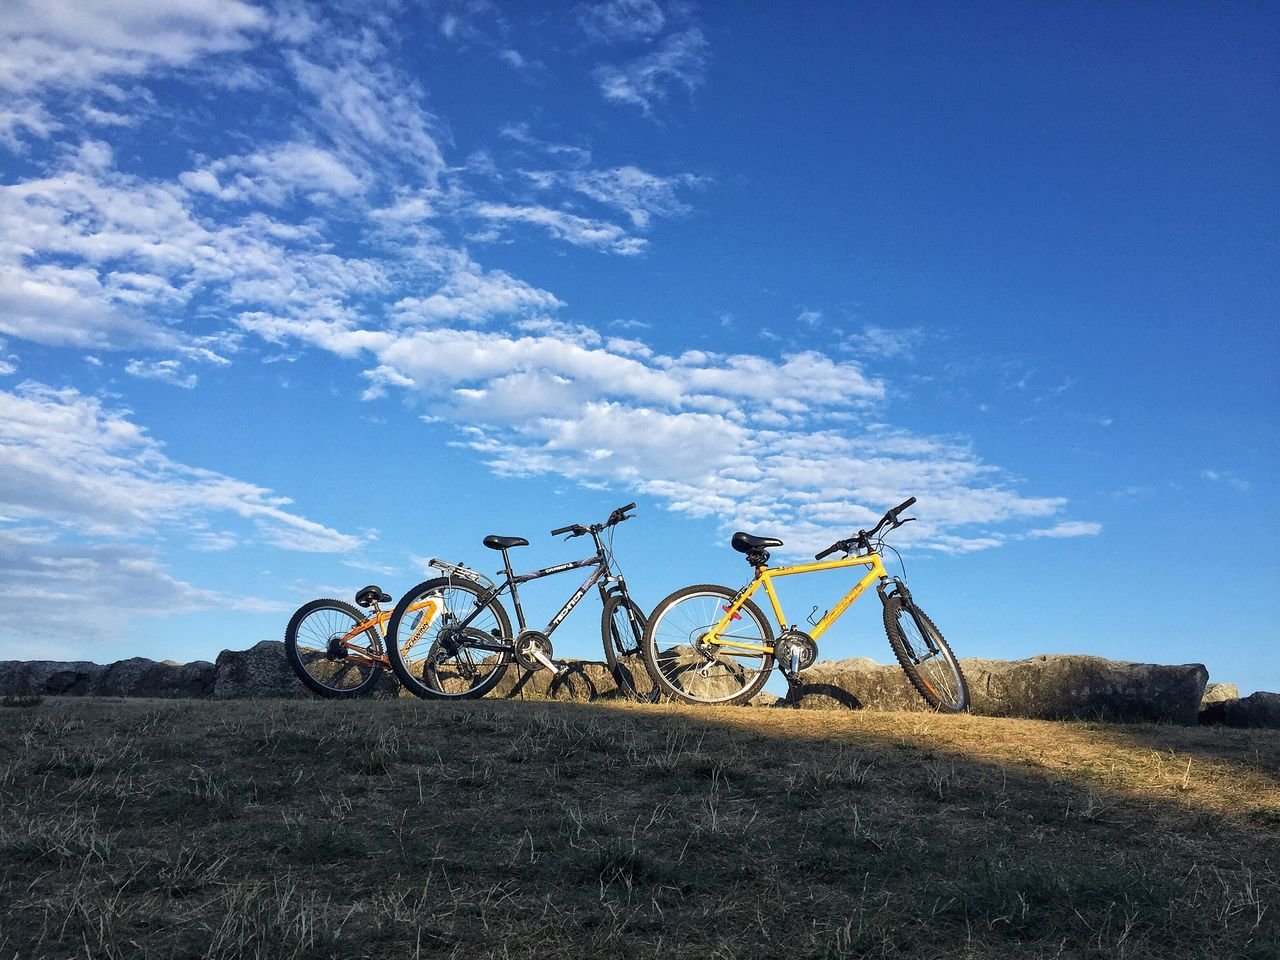 bicycle, field, sky, transportation, blue, grass, mode of transport, land vehicle, nature, stationary, landscape, cloud - sky, tranquil scene, outdoors, day, tranquility, beauty in nature, scenics, rural scene, mountain bike, no people